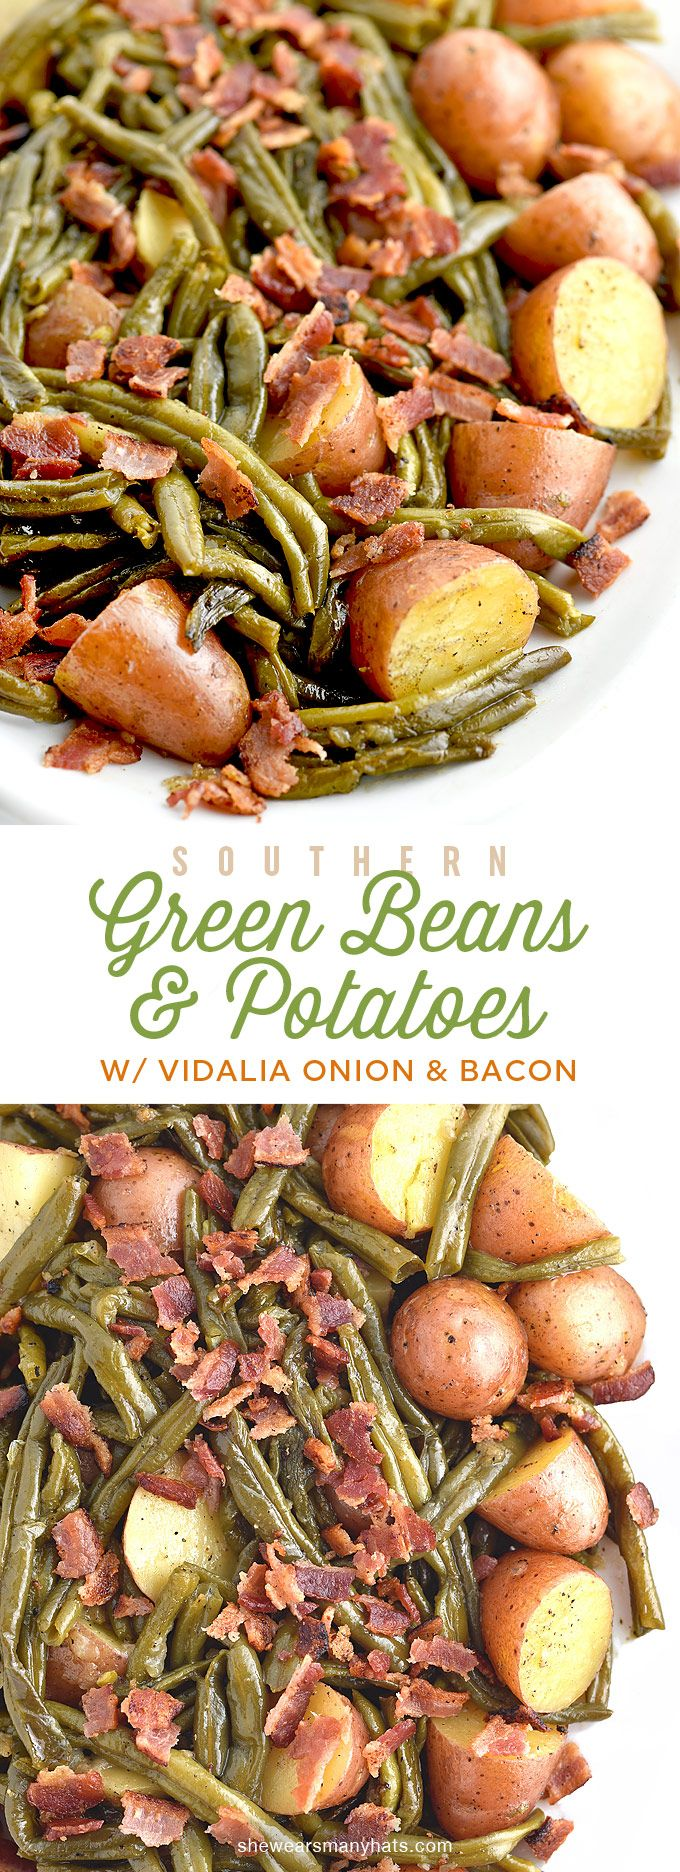 Southern Green Beans and Potatoes with Vidalia Onion and Bacon Recipe | shewearsmanyhats.com *Using ghee*